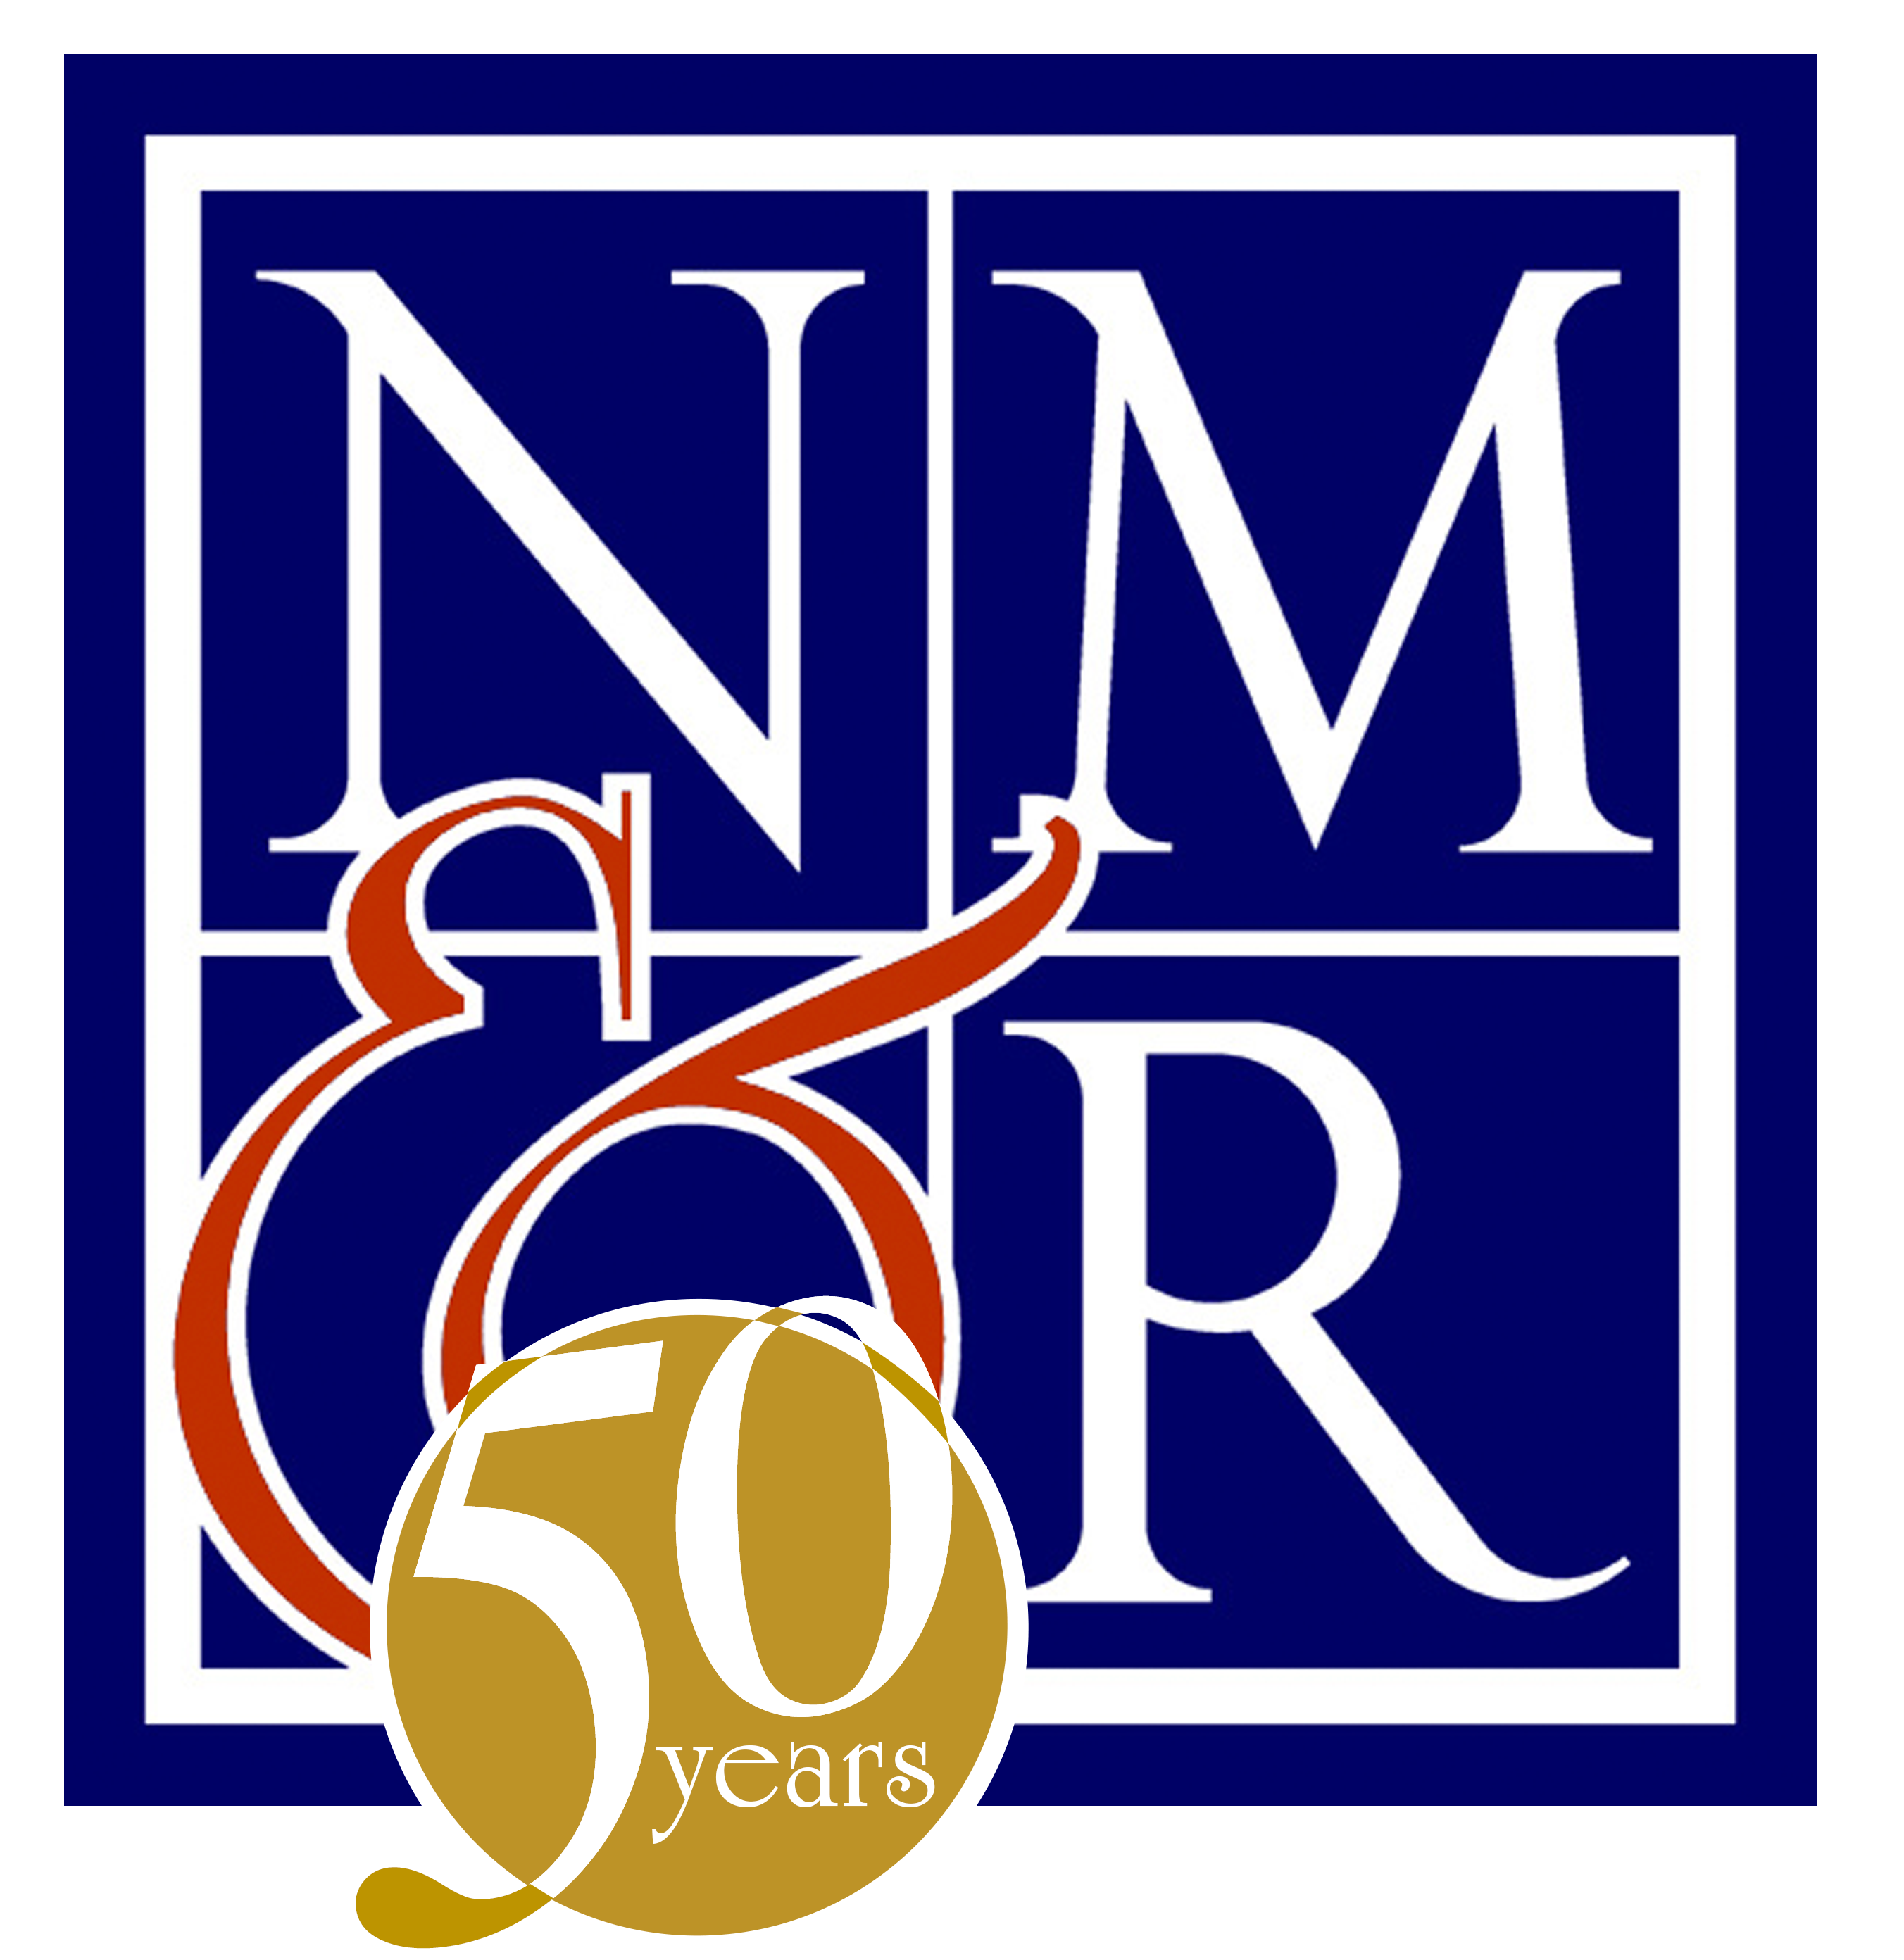 nmr architects logo